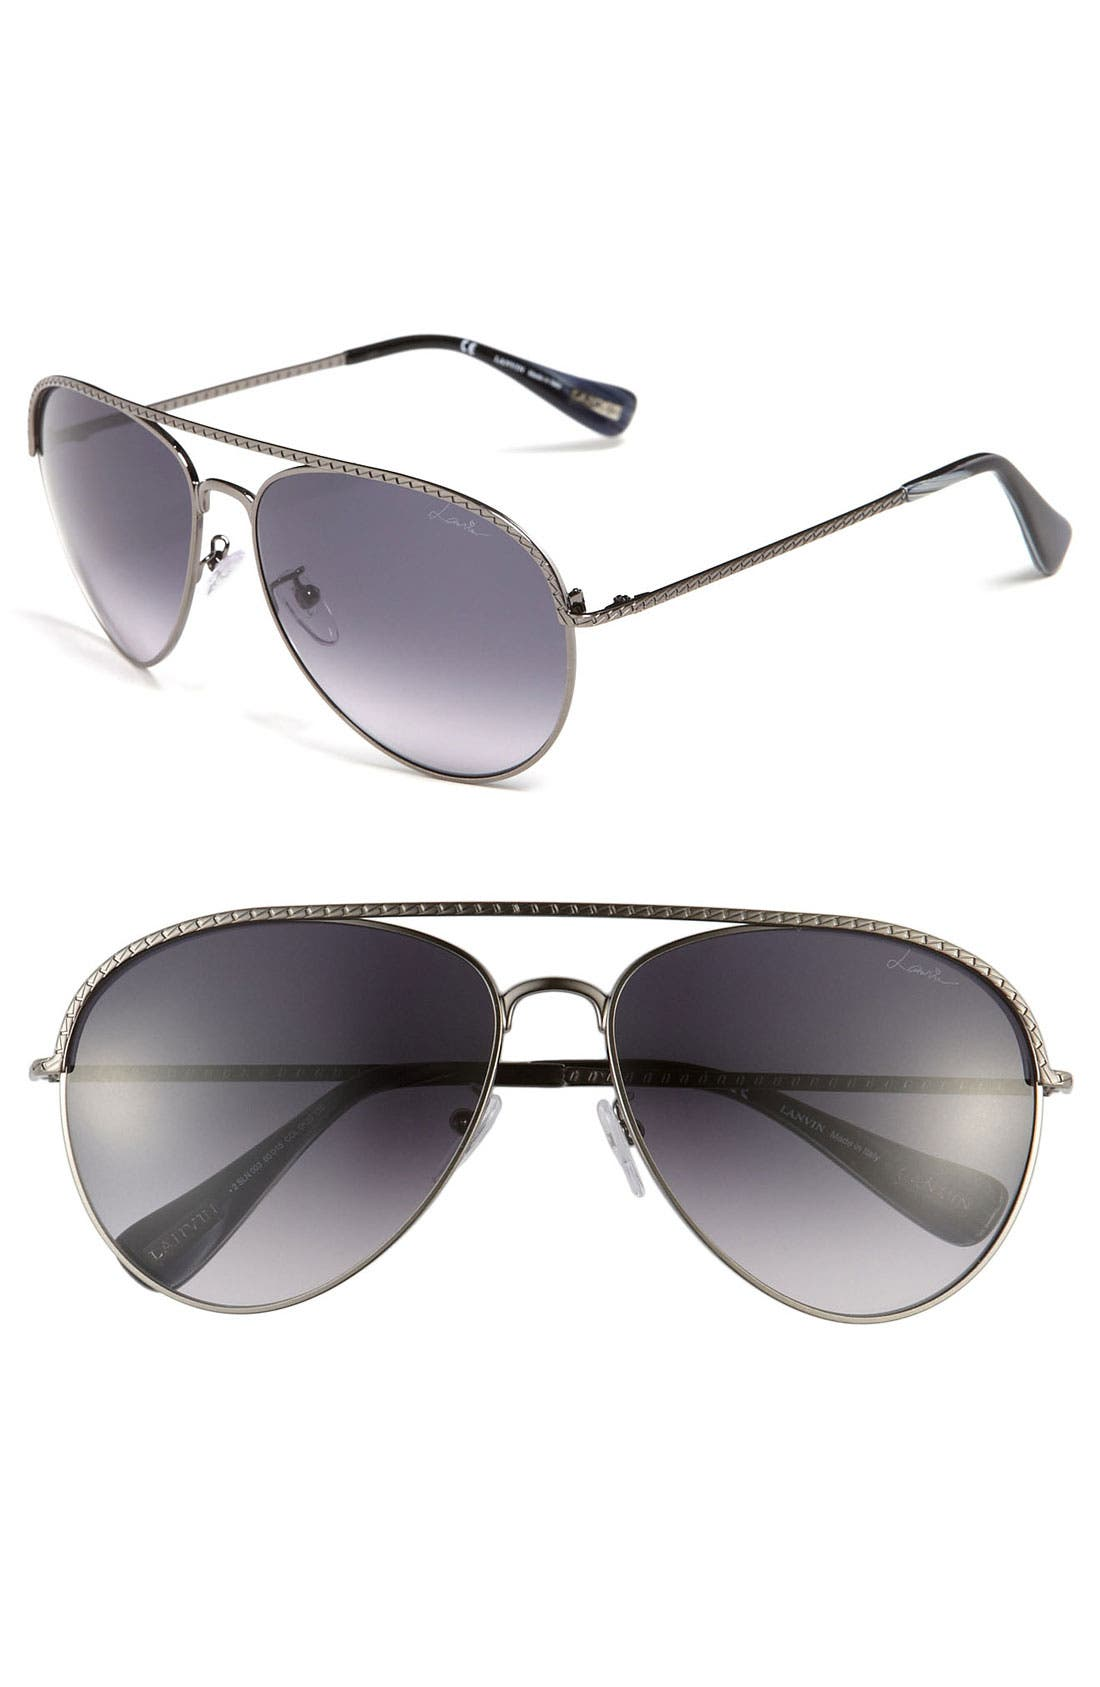 Main Image - Lanvin Aviator Sunglasses